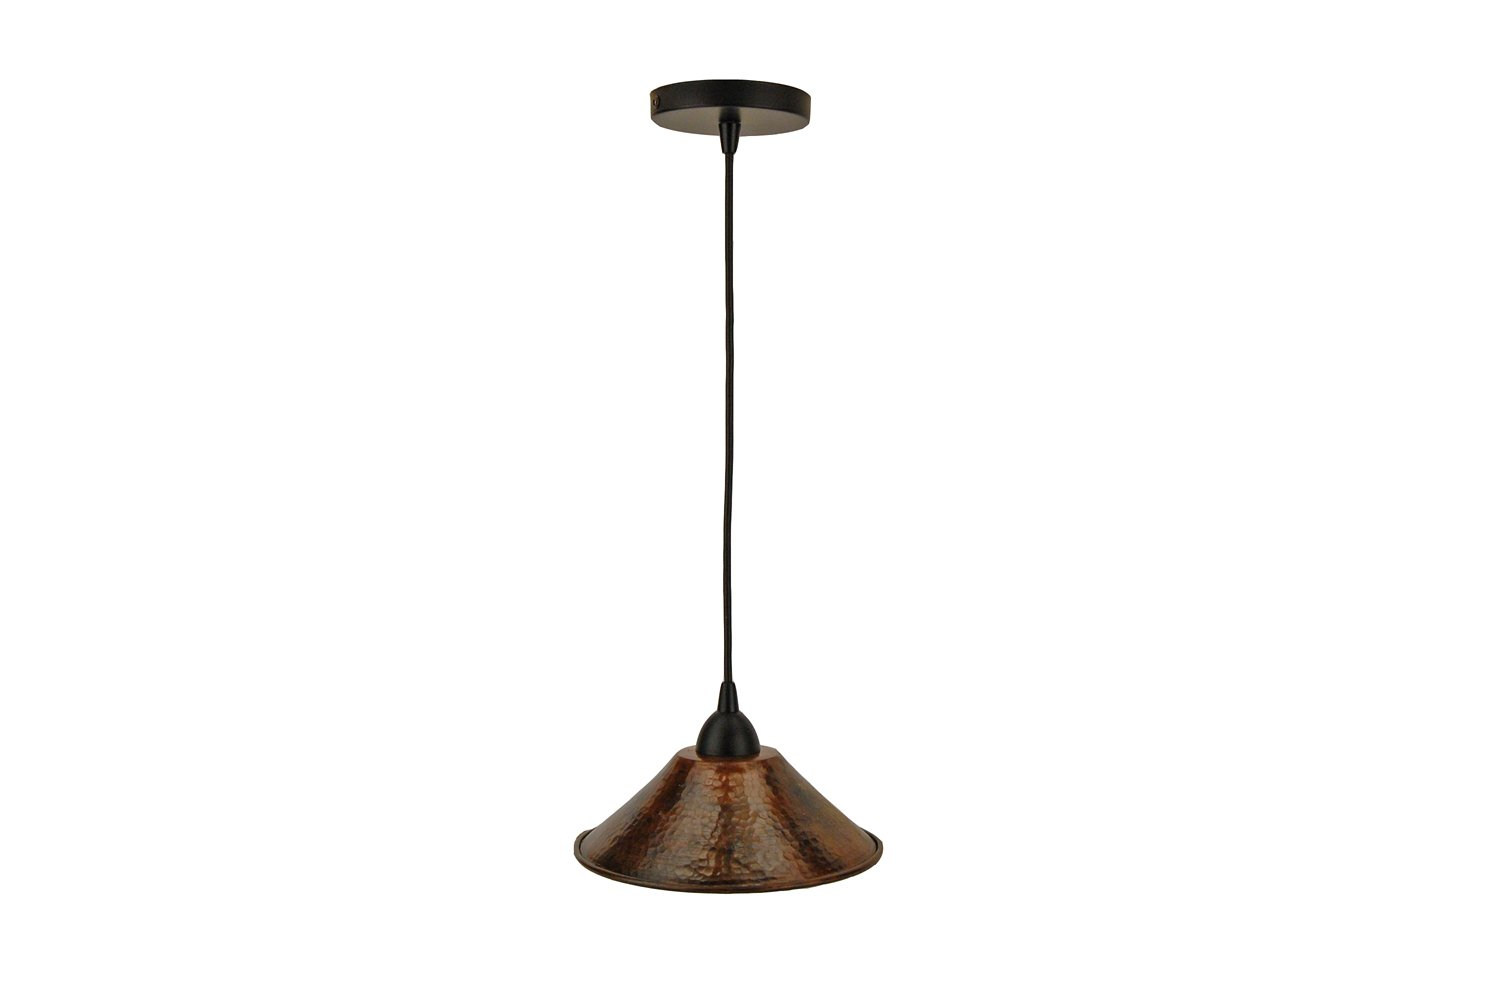 Premier Copper Products L500DB 9-Inch Hand Hammered Copper Cone Pendant Light, Oil Rubbed Bronze